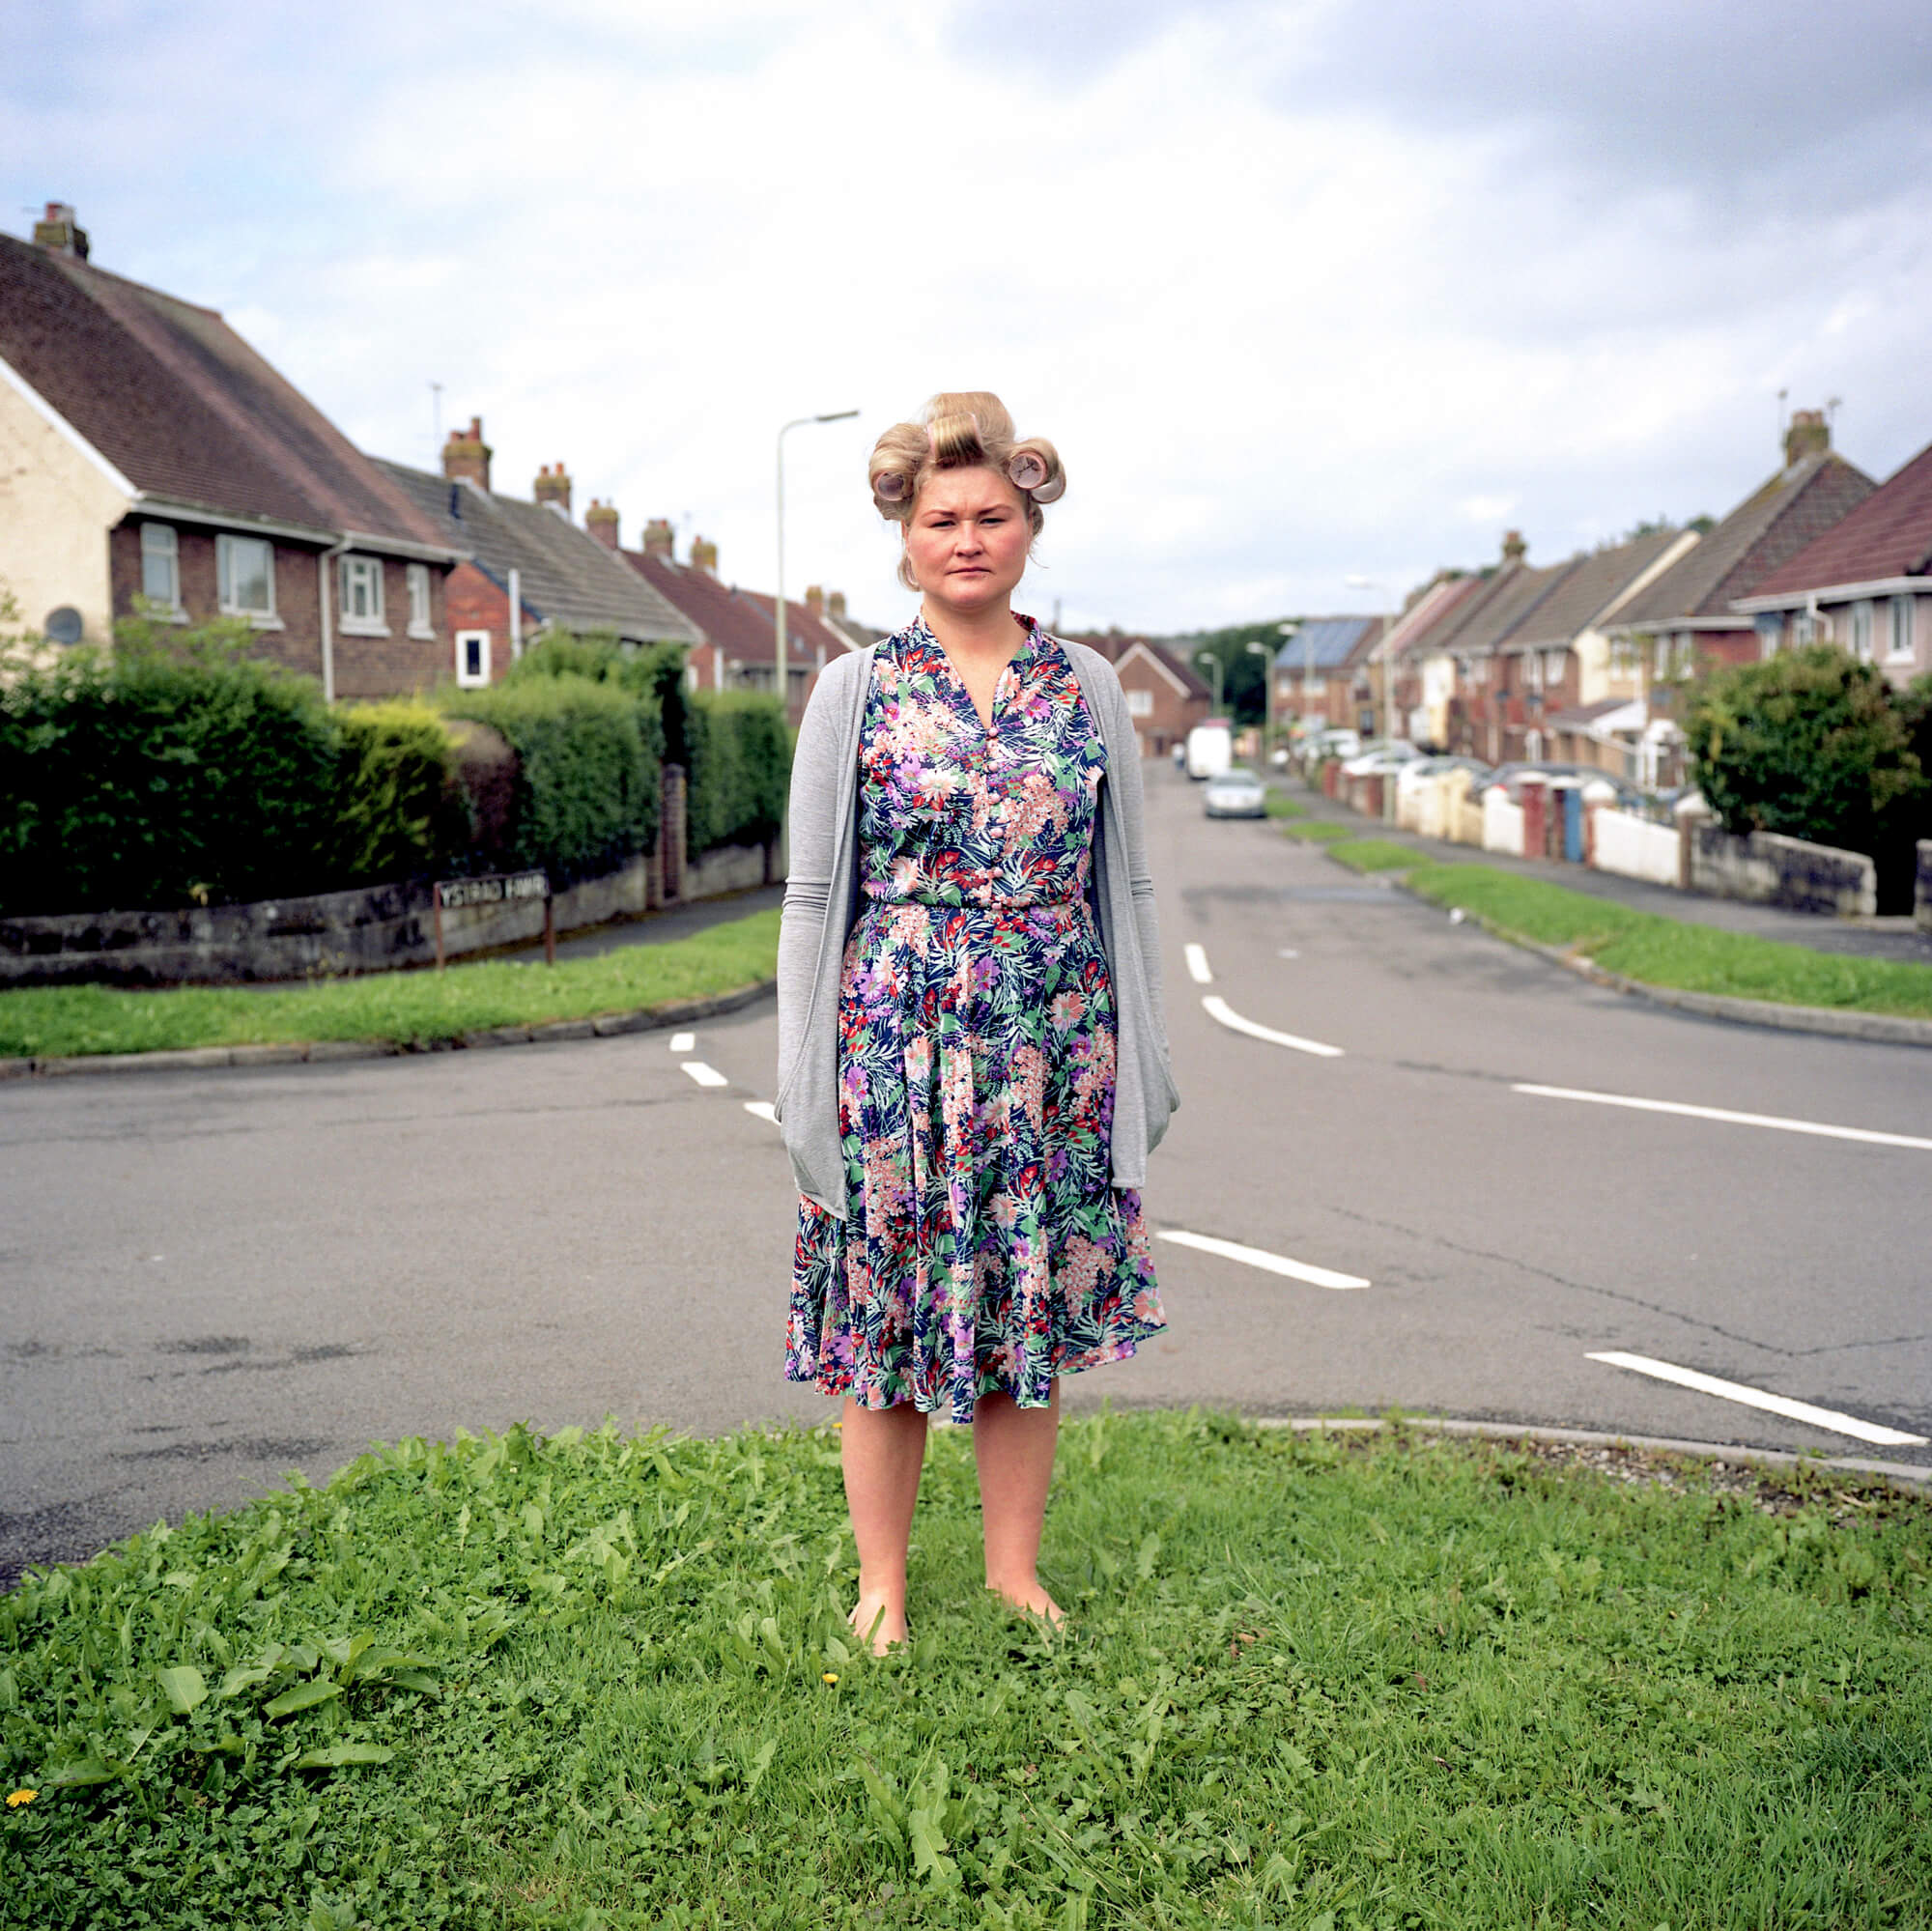 Book Review - Dan Wood 'Suicide Machine' the south west collective of photography woman stood on street corner